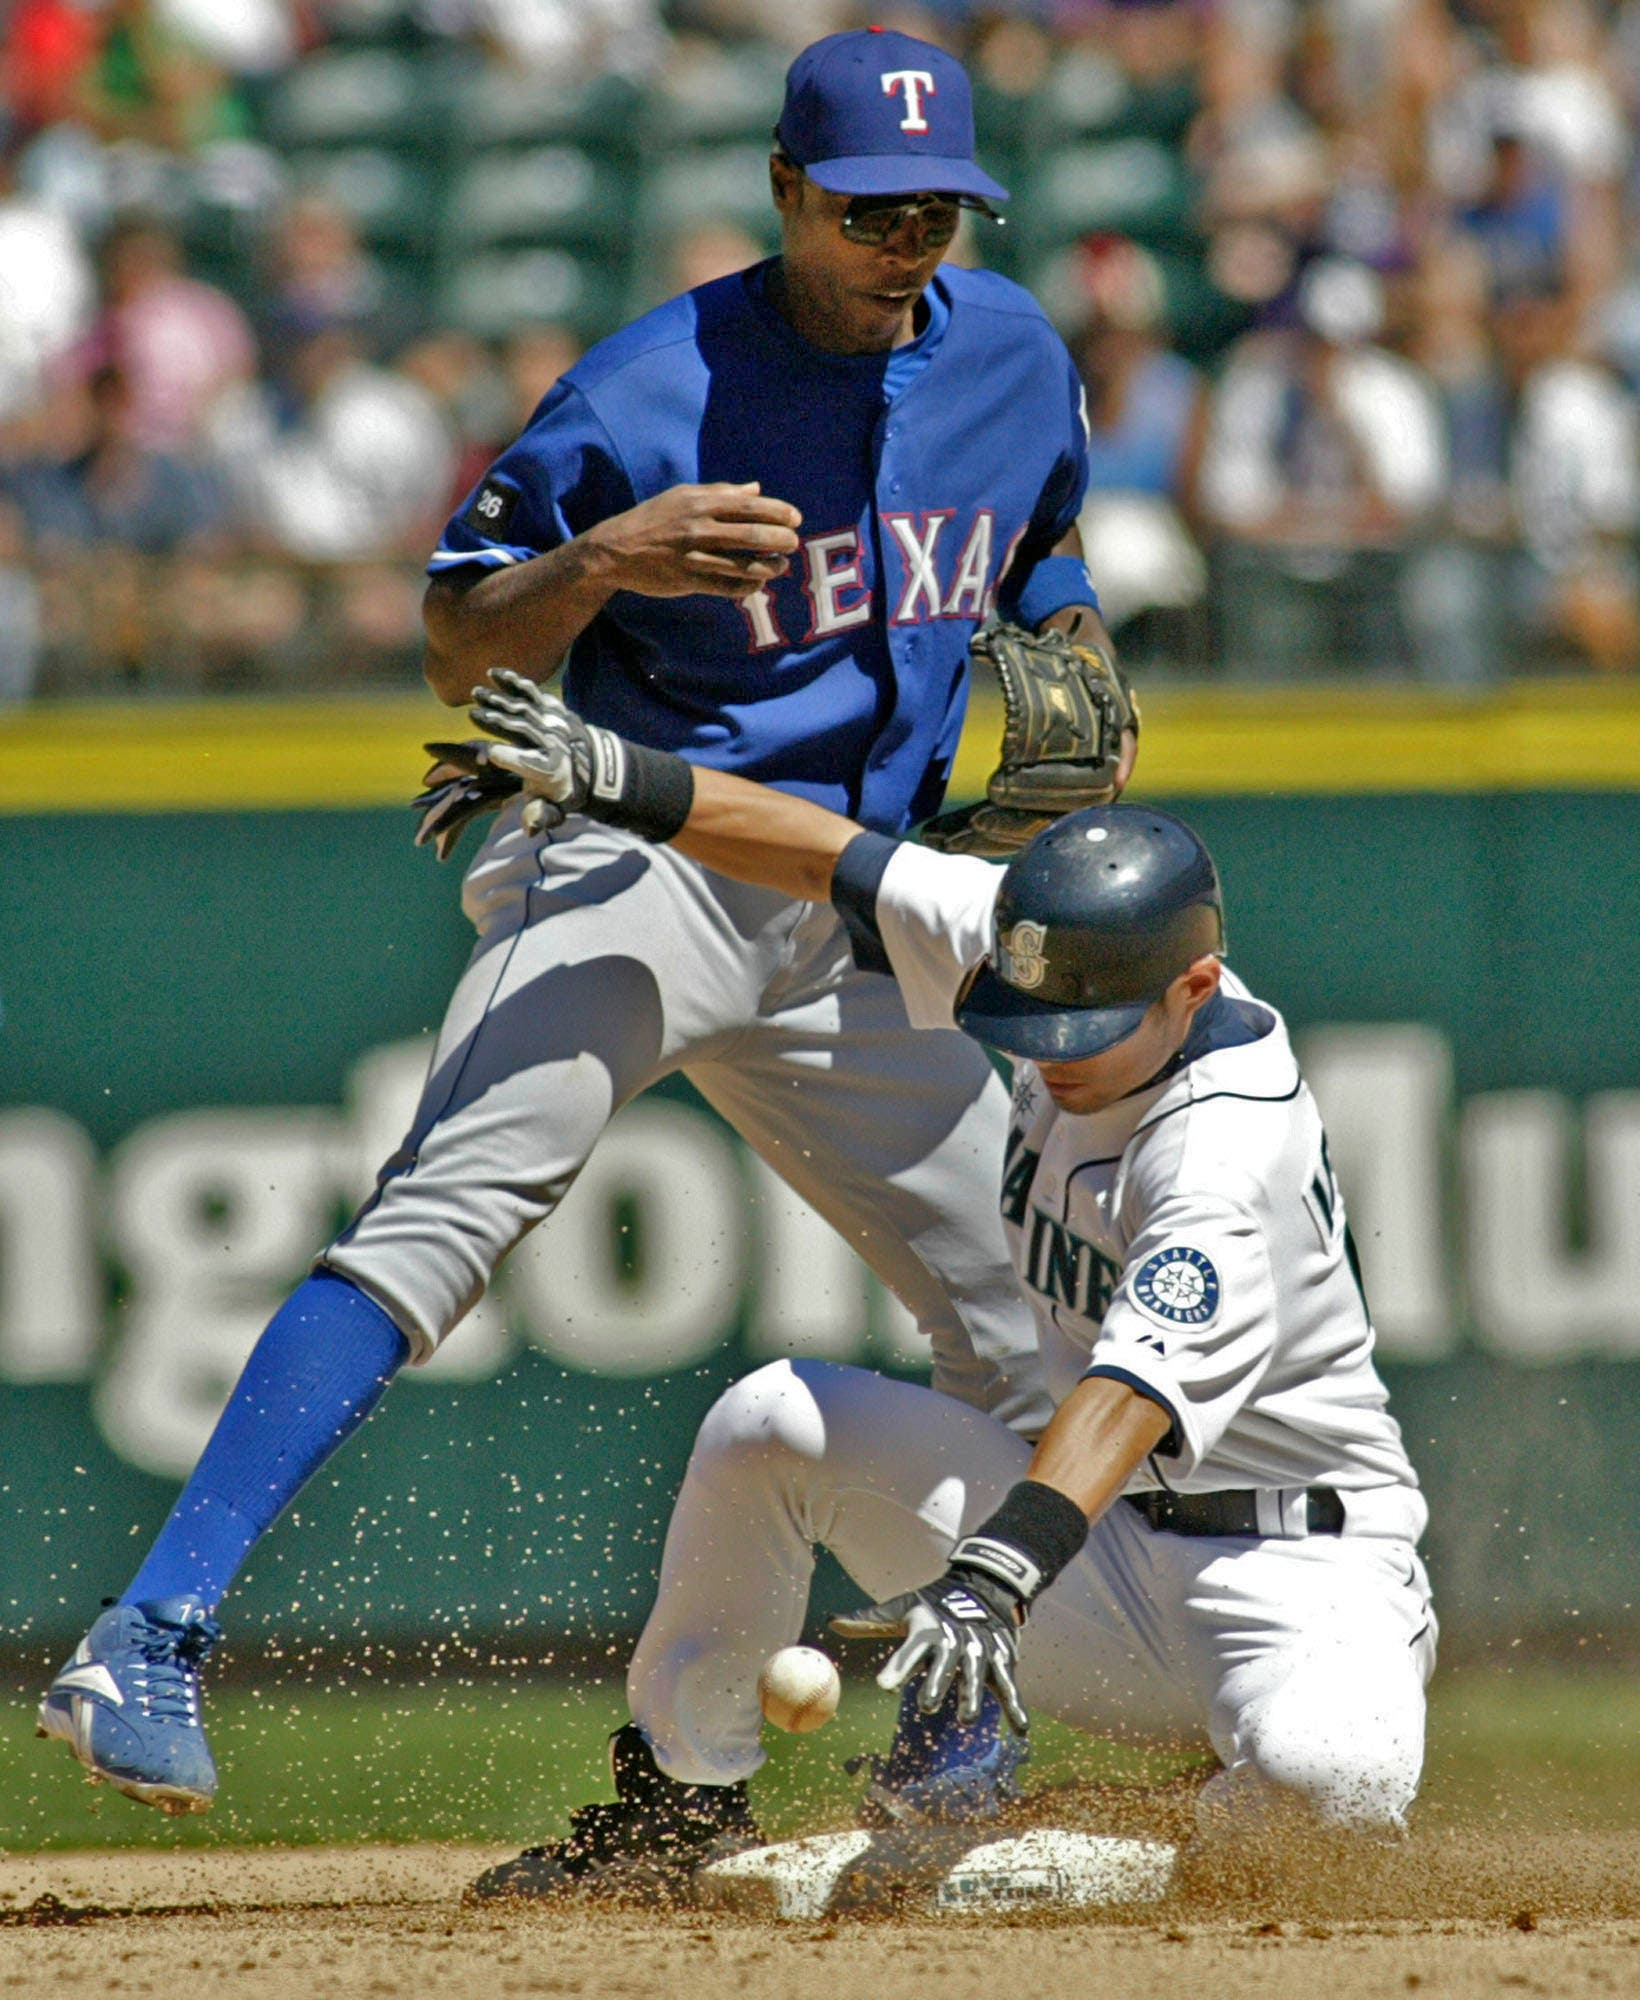 Seattle Mariners Ichiro Suzuki breaks up a double play by forcing Texas Rangers second baseman Alfonso Soriano to drop the ball in the eight inning of their major league game at Safeco Field Sunday, July 3, 2005 in Seattle. Mariners Willie Bloomquist scored on the play as the Mariners beat the Rangers 2-1. ©2005. Jim Bryant Photo. All RIghts Reserved